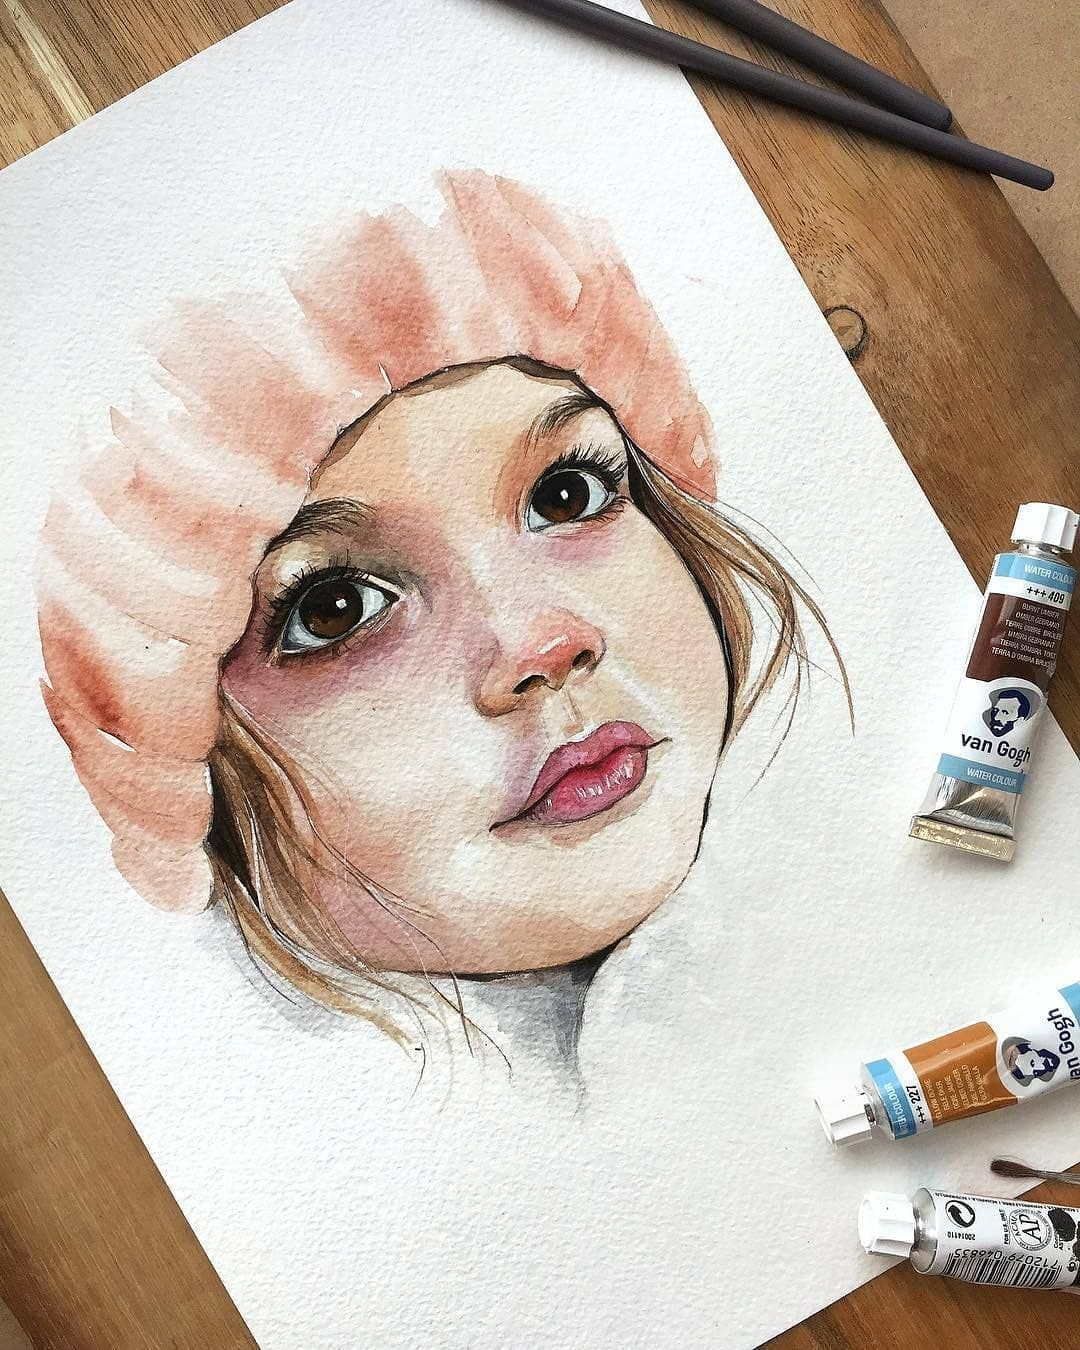 Epingle Par Martin Sur Aquarelle Portrait Tutoriel Portrait